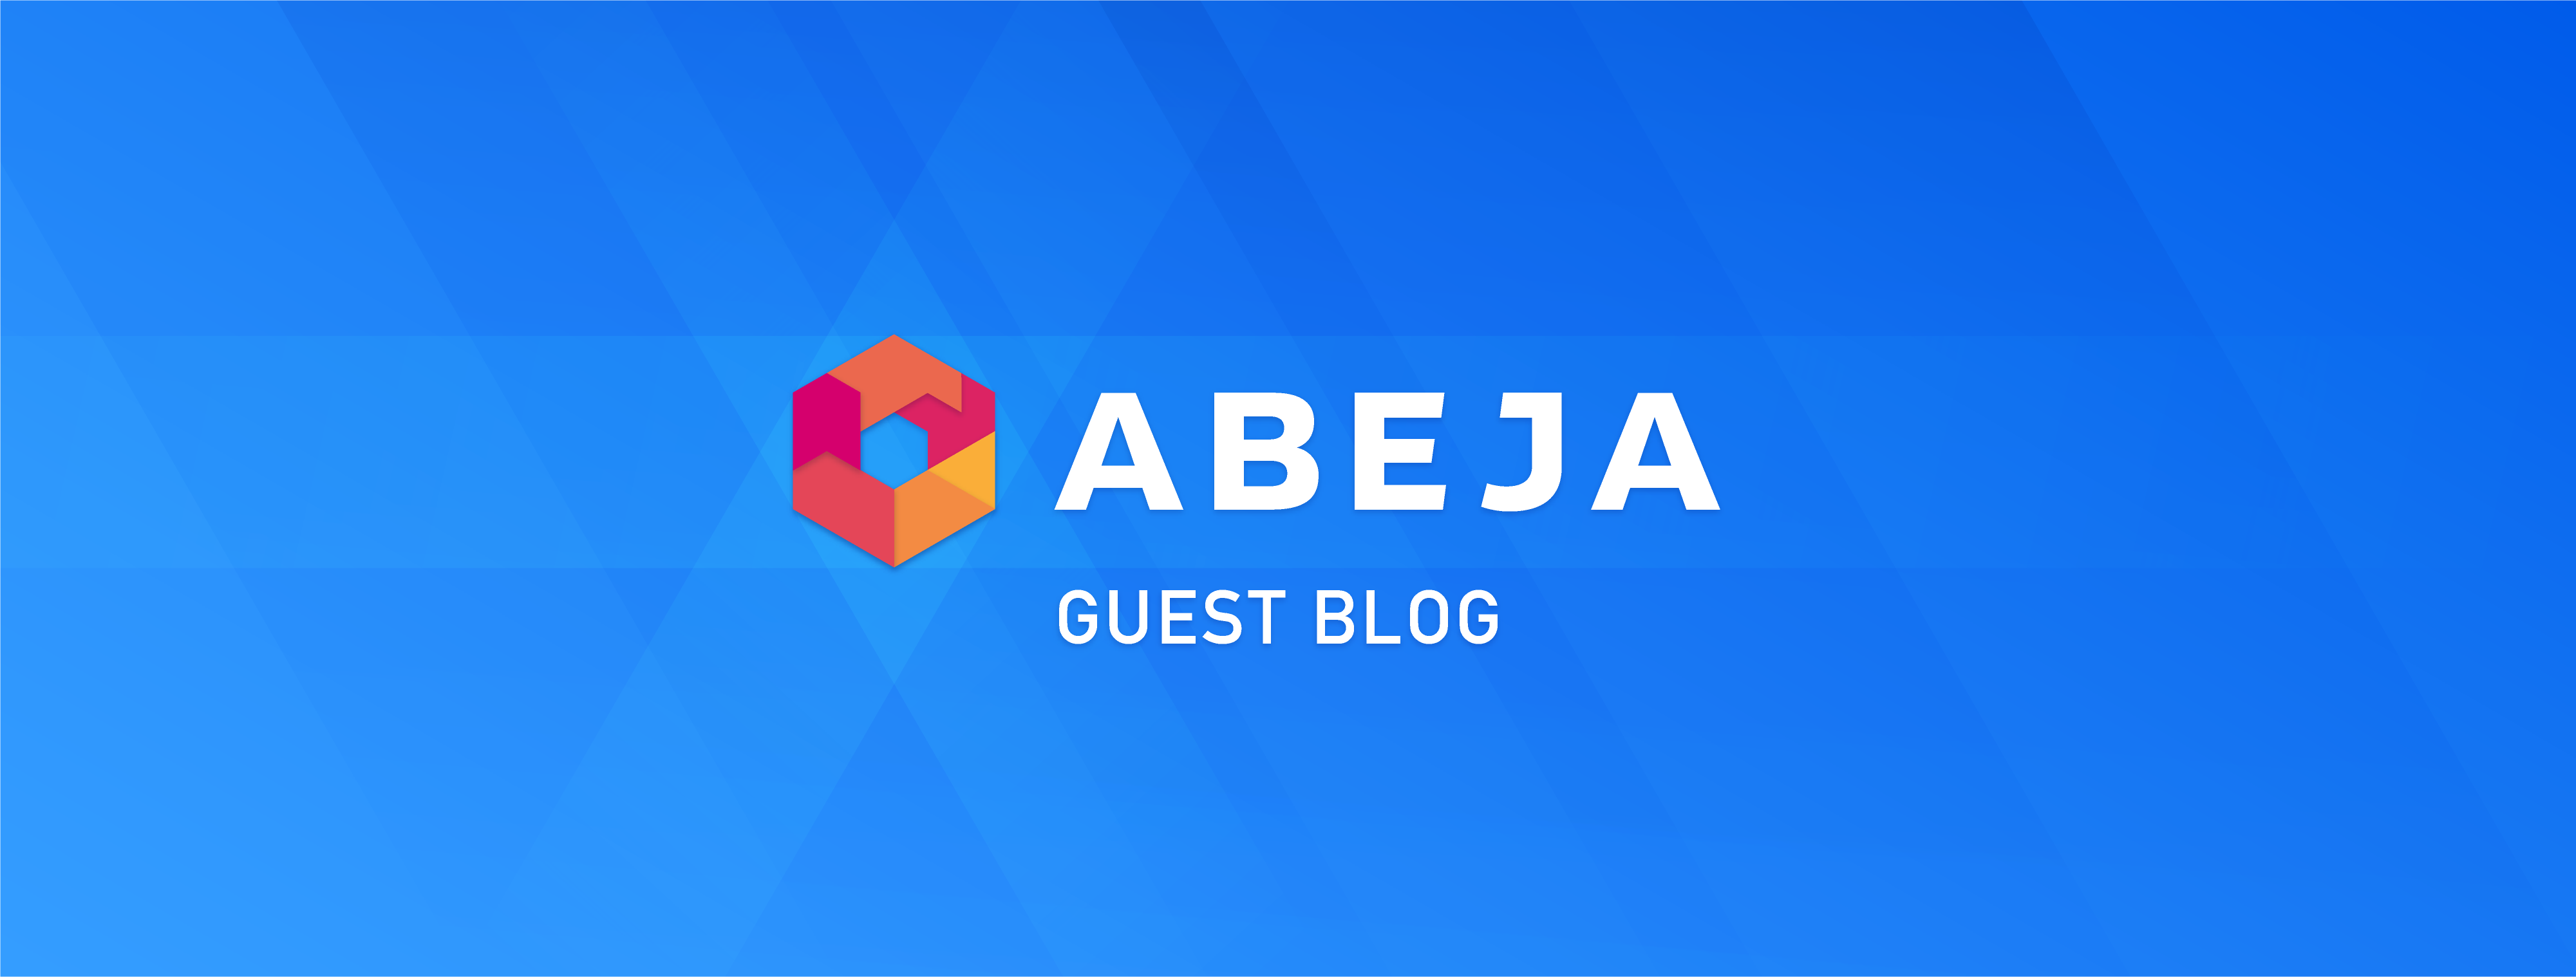 ABEJA Guest blog Post – Using Spotinst to Efficiently and Robustly Manage Spot Instances & Containers